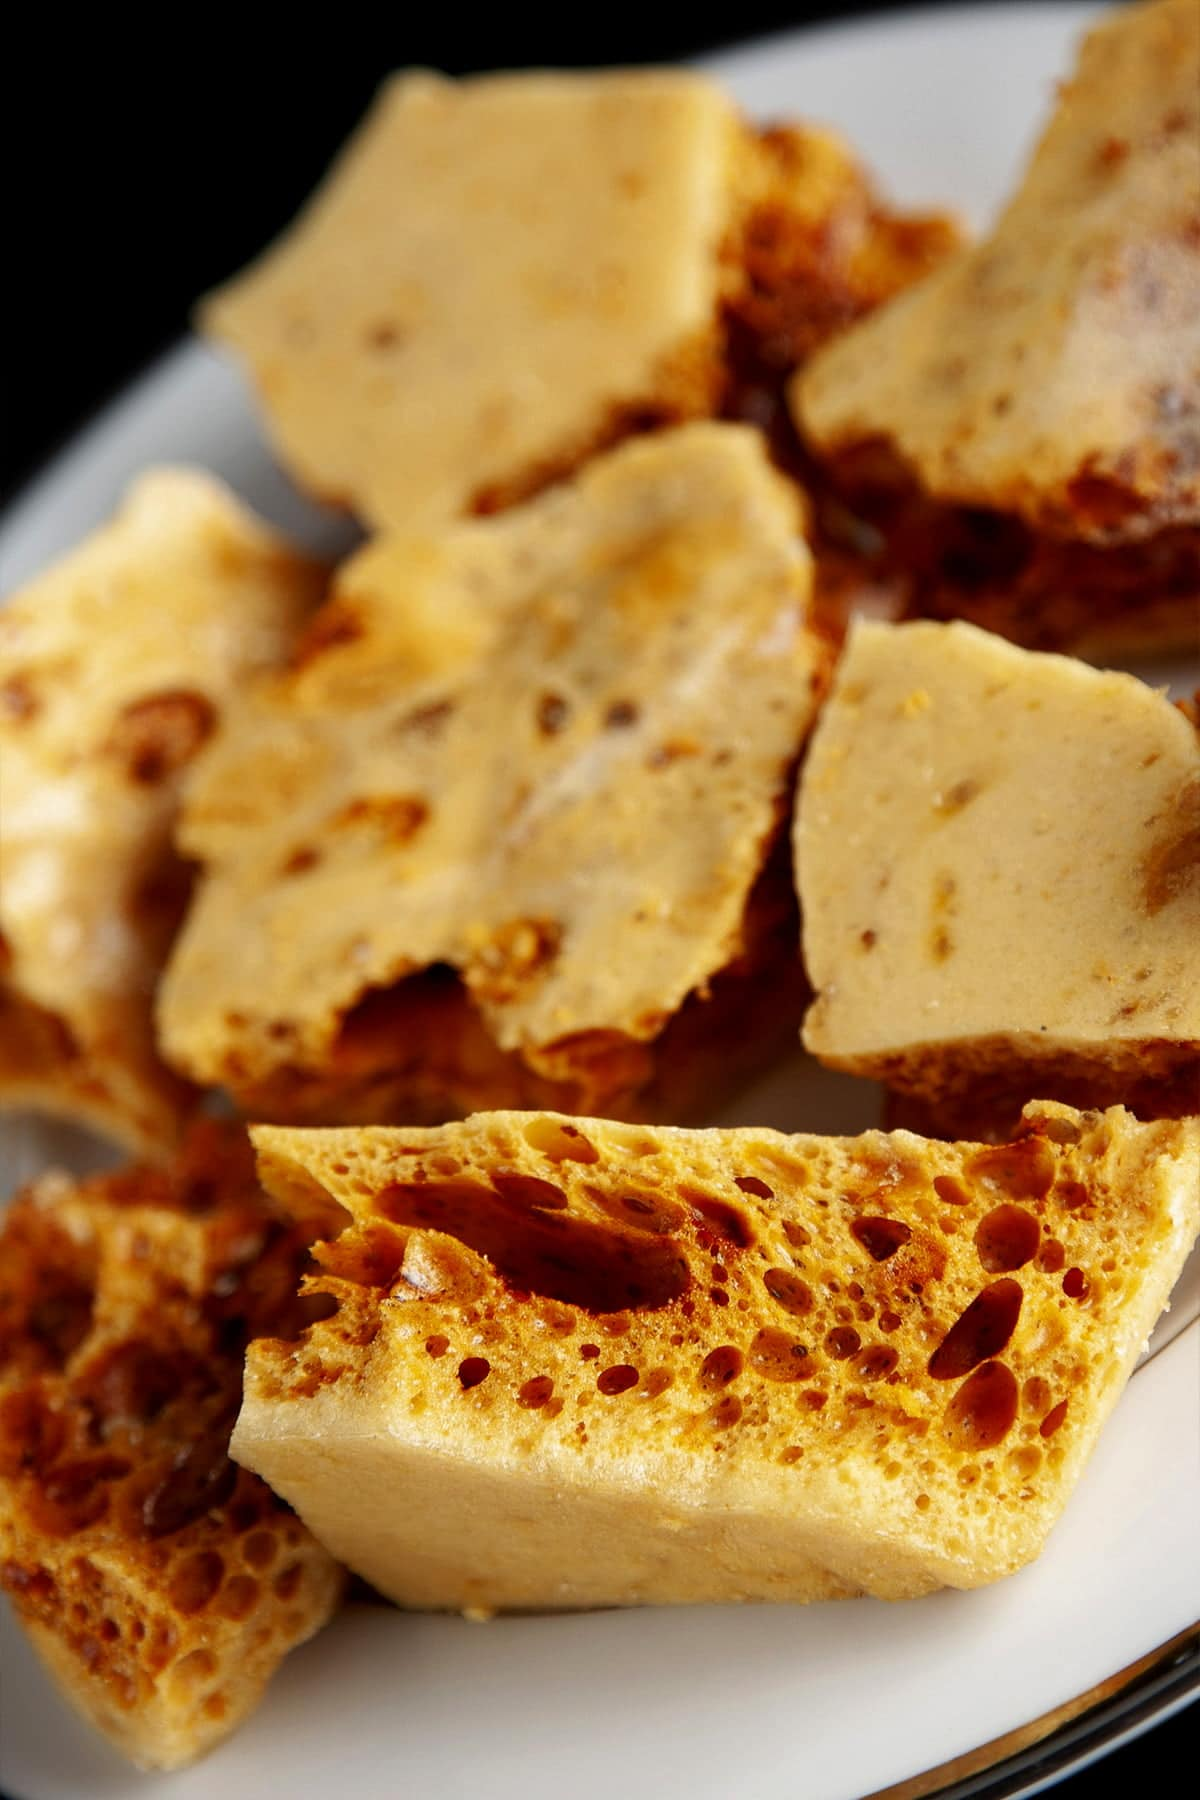 Close up view of a plate of golden sponge candy chunks